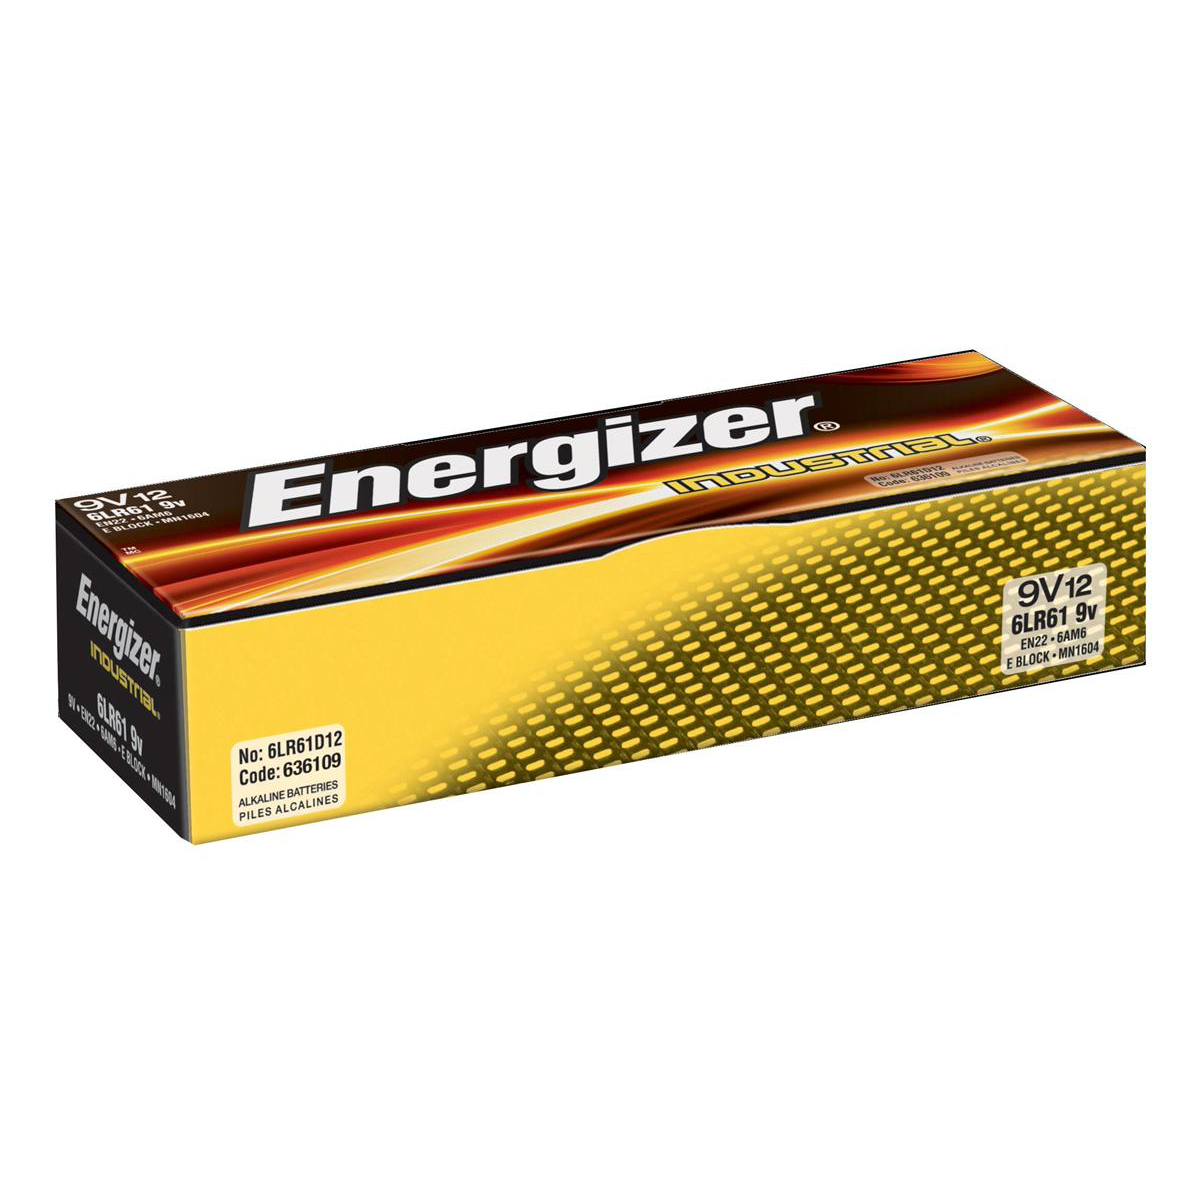 Energizer Industrial Battery Long Life 6LR61 9V Ref 636109 Pack 12